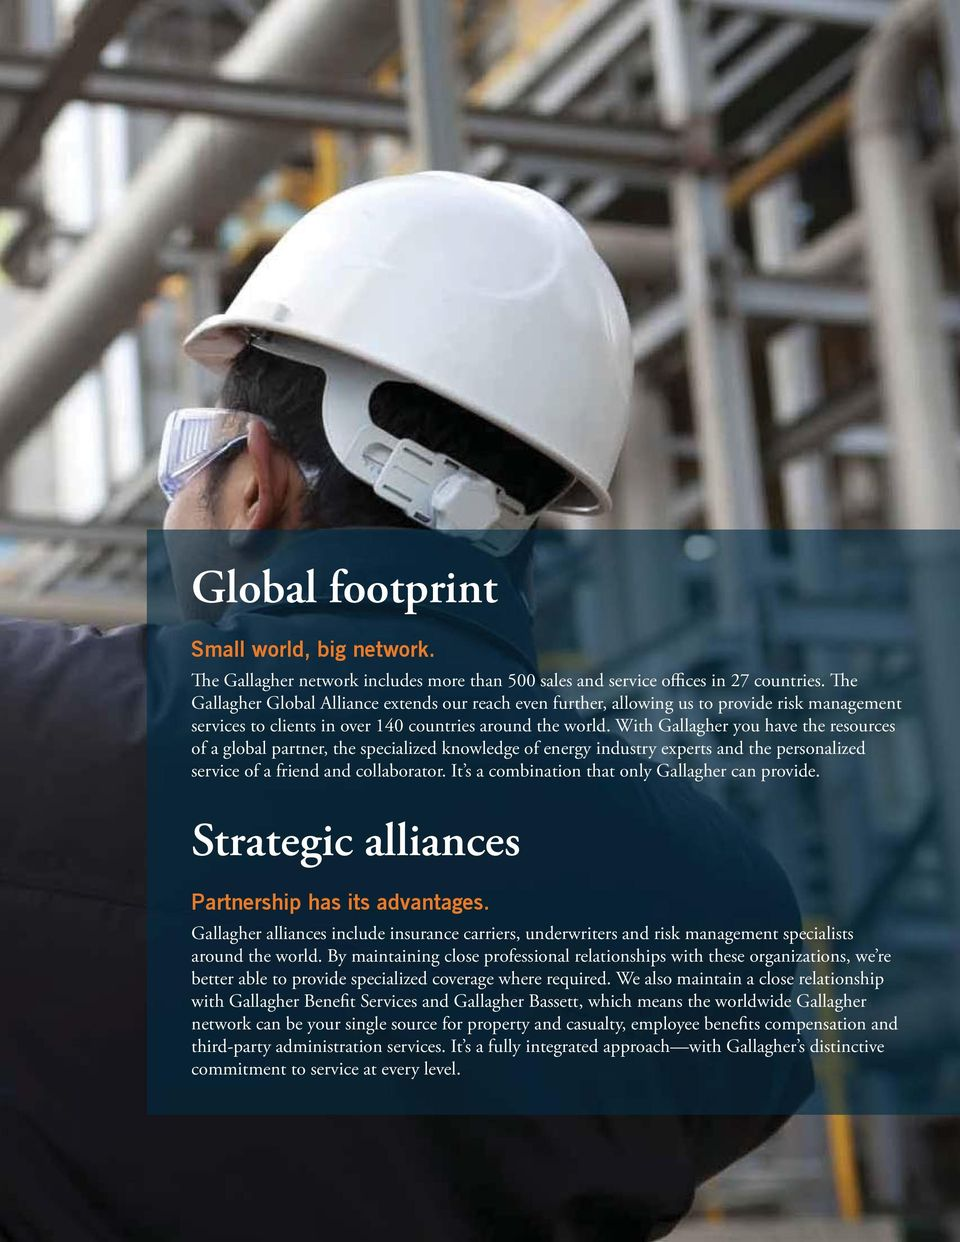 With Gallagher you have the resources of a global partner, the specialized knowledge of energy industry experts and the personalized service of a friend and collaborator.